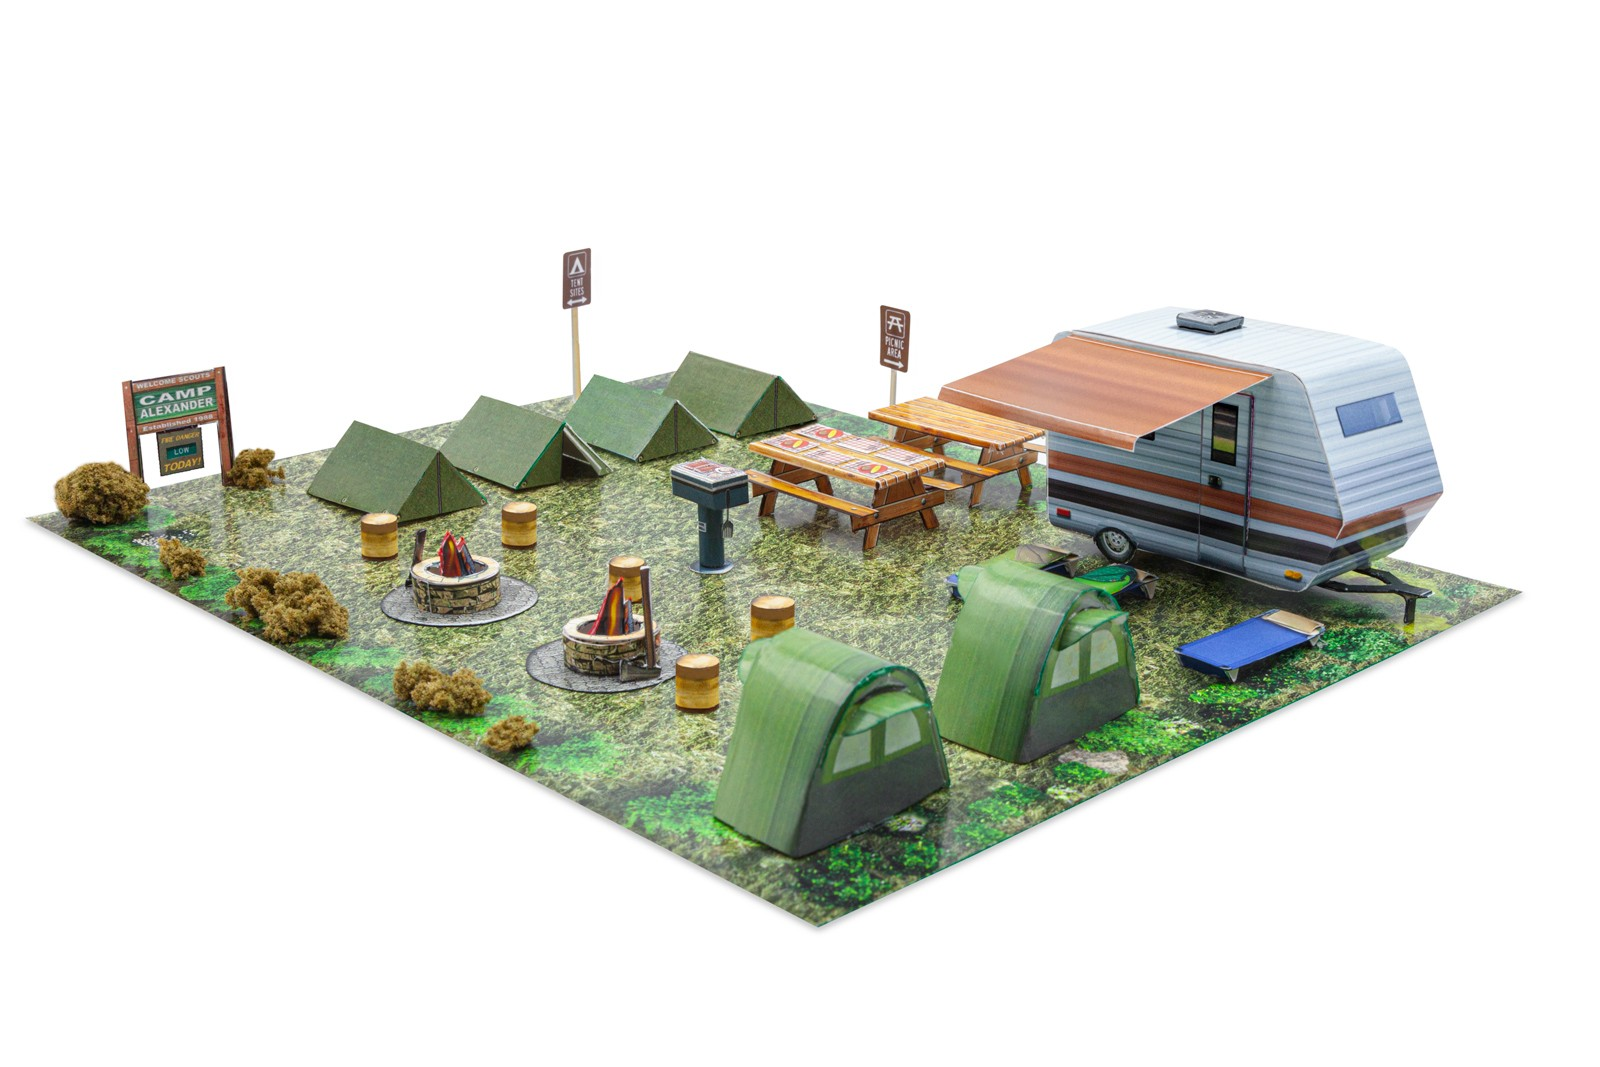 BK 4838 1:48 Scale Scout Camp Model Building Kit